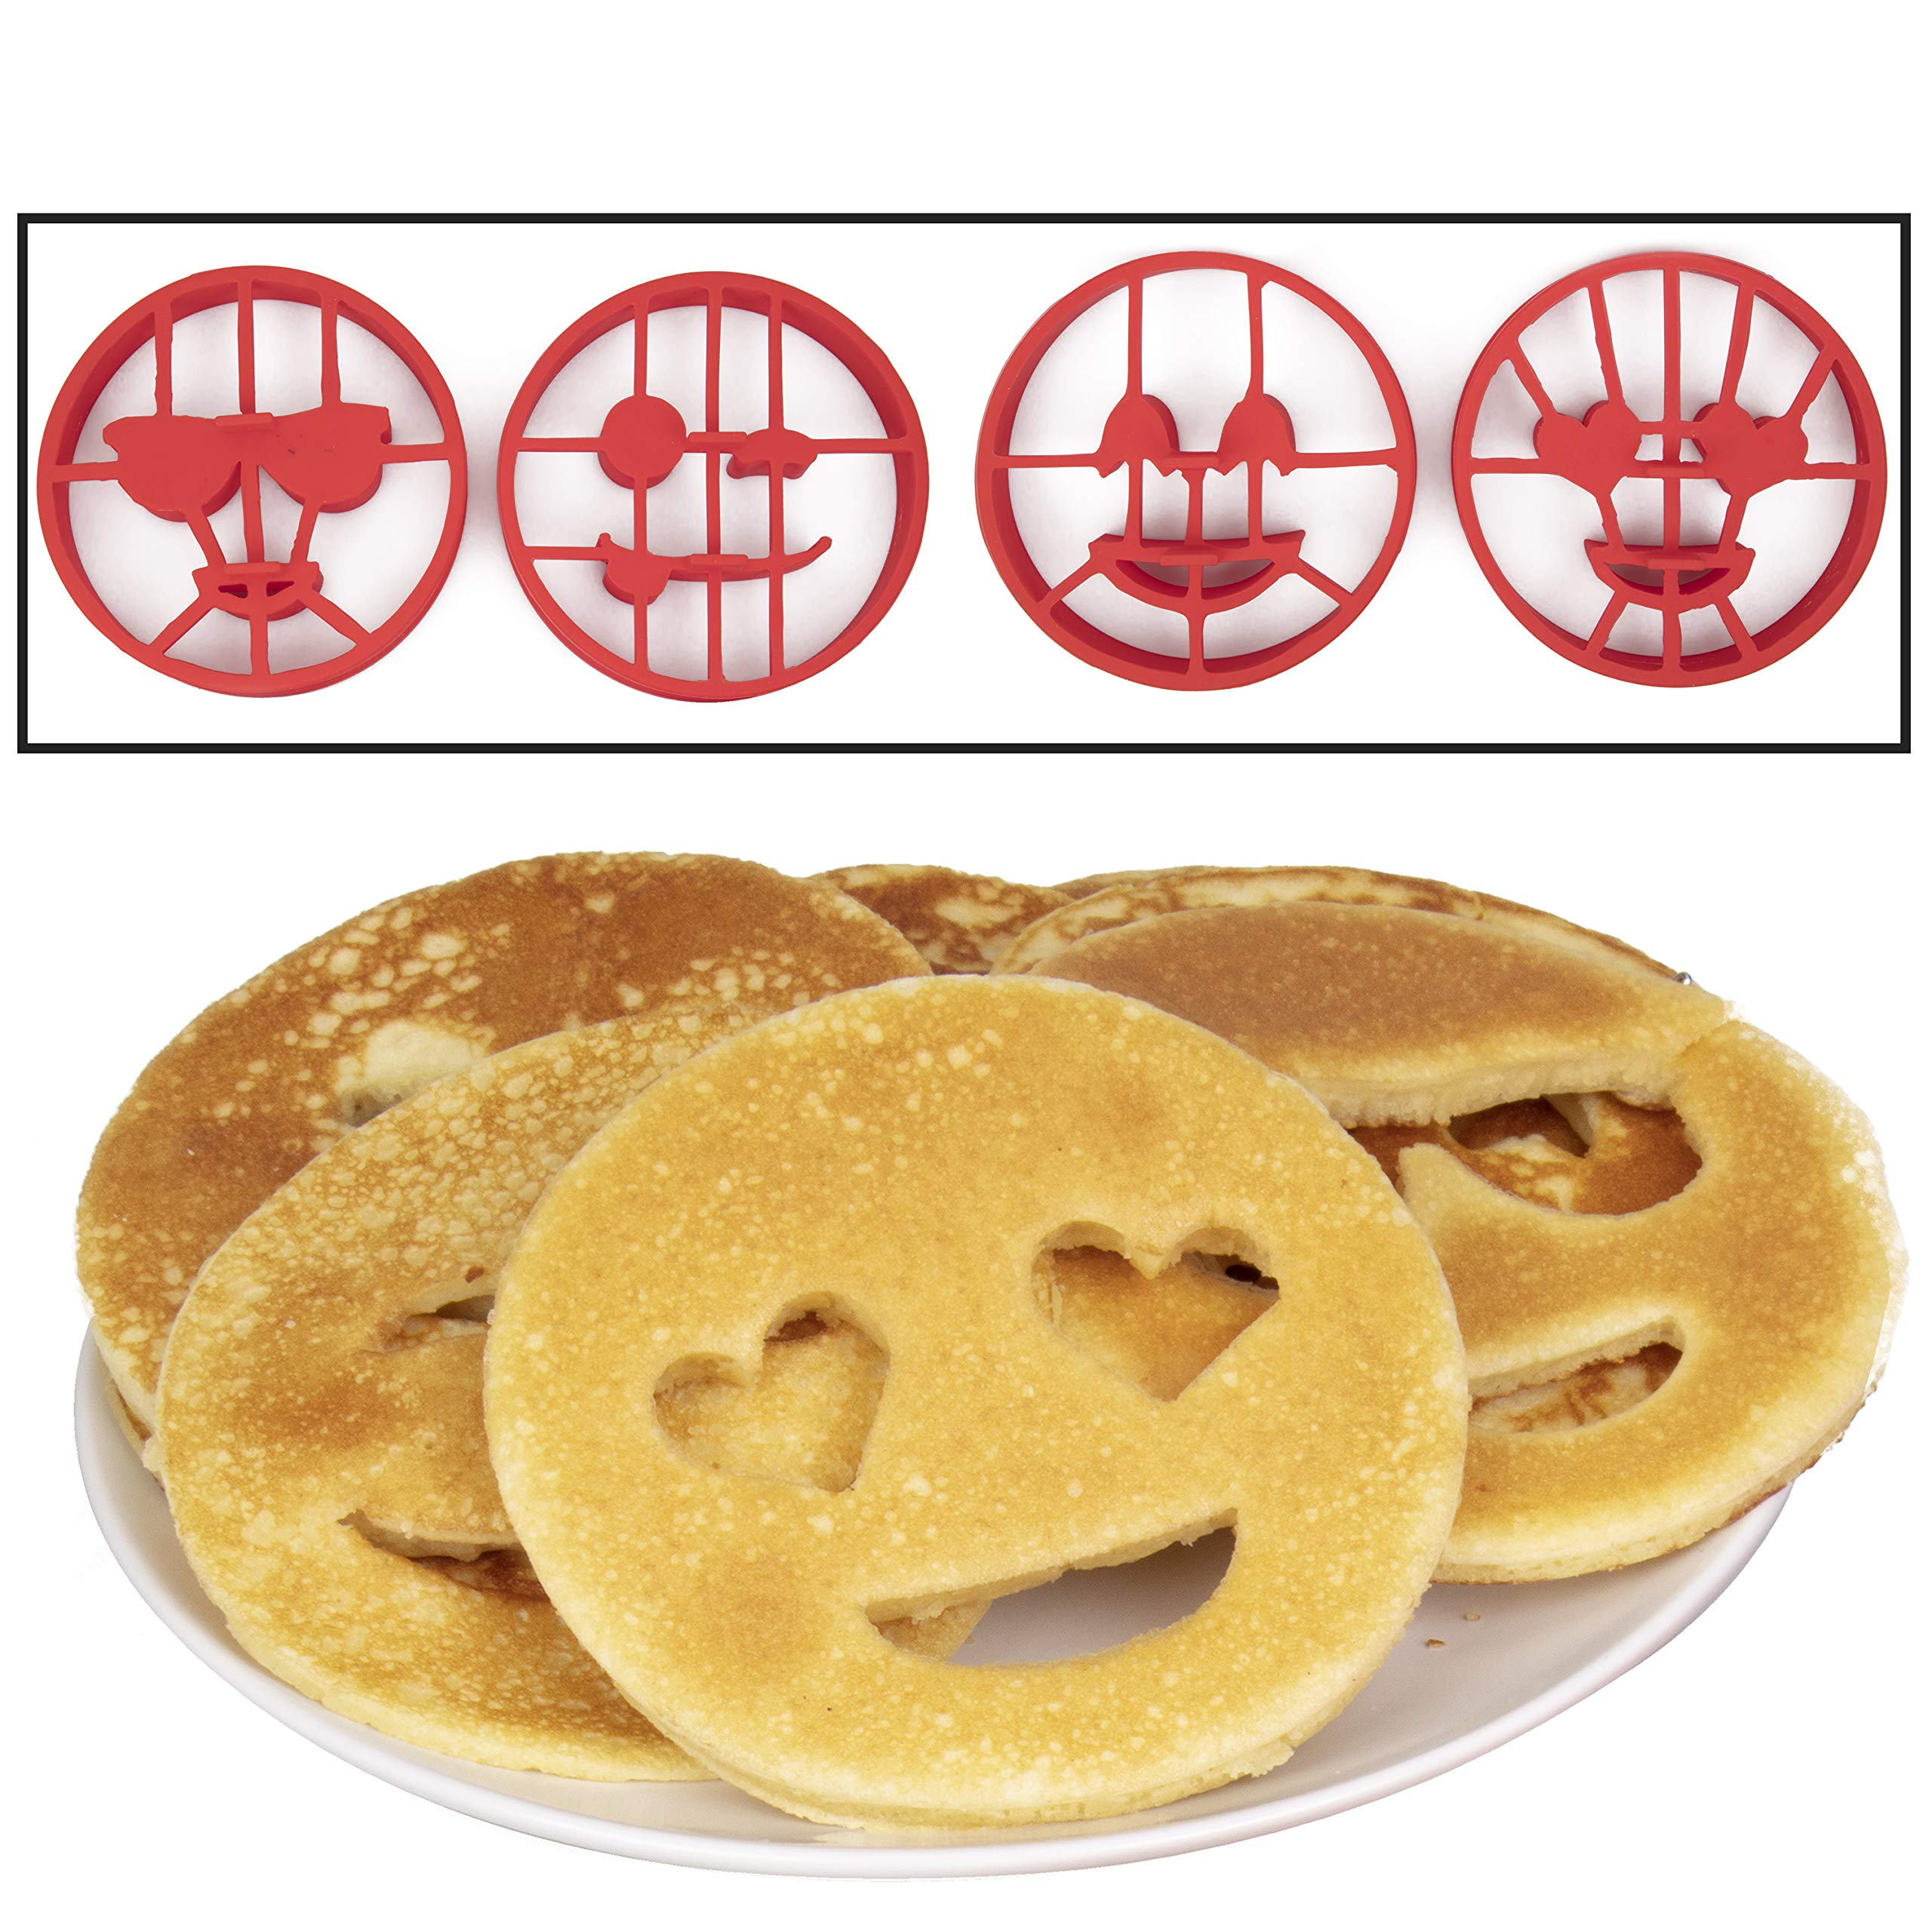 Emoji Pancake Molds and Egg Rings (4 Pack) for Kids AND Adults - Reusable Silicone Smiley Face Maker Doubles as Cookie Maker Set- FDA Approved, BPA Free, Food Safe, Heat Resistant Silicone by Good Cooking (Image #3)